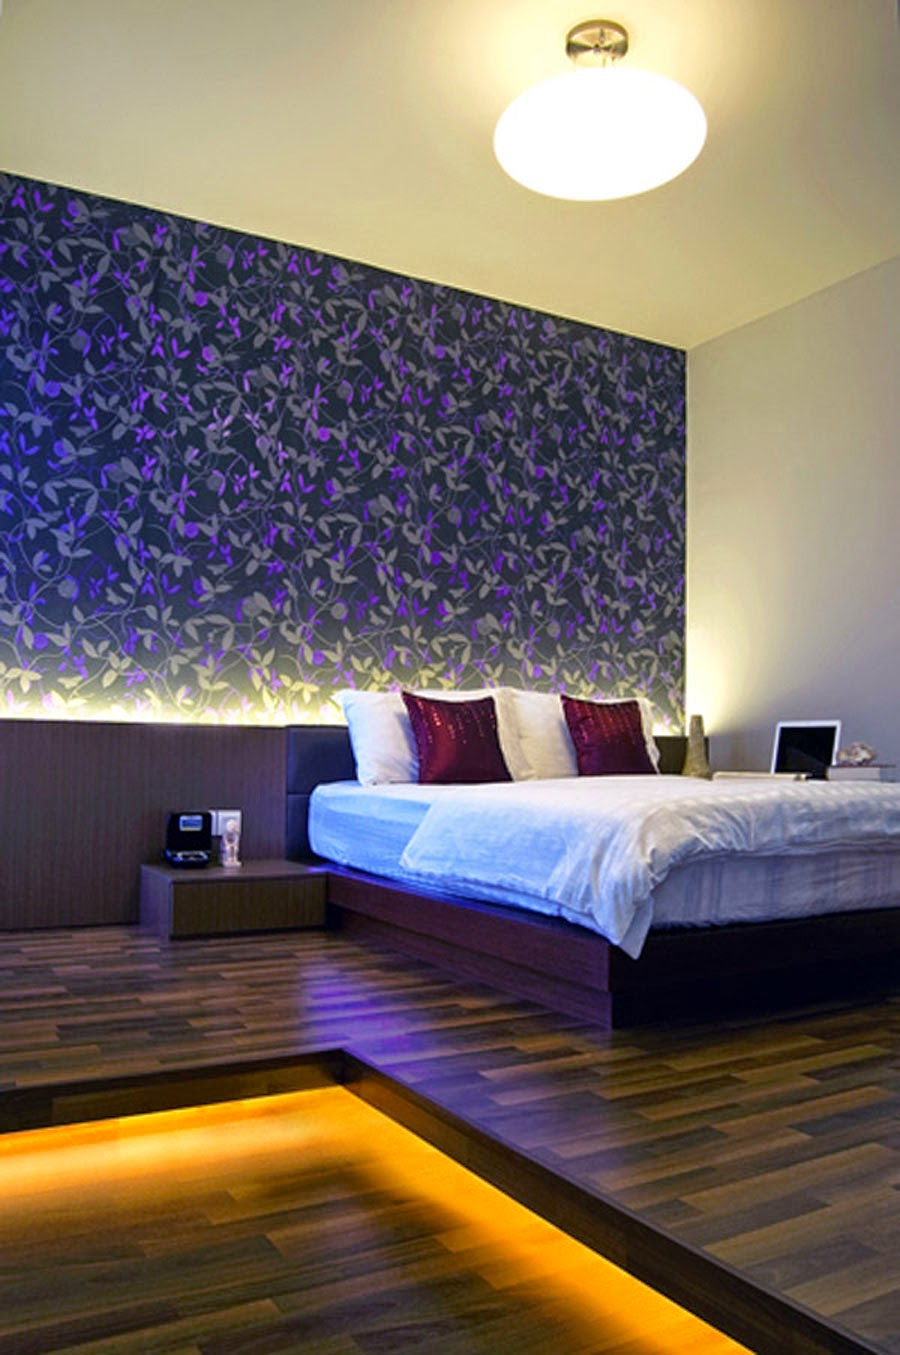 Small bedroom lighting ideas the interior designs - Bedrooms color design photo ...